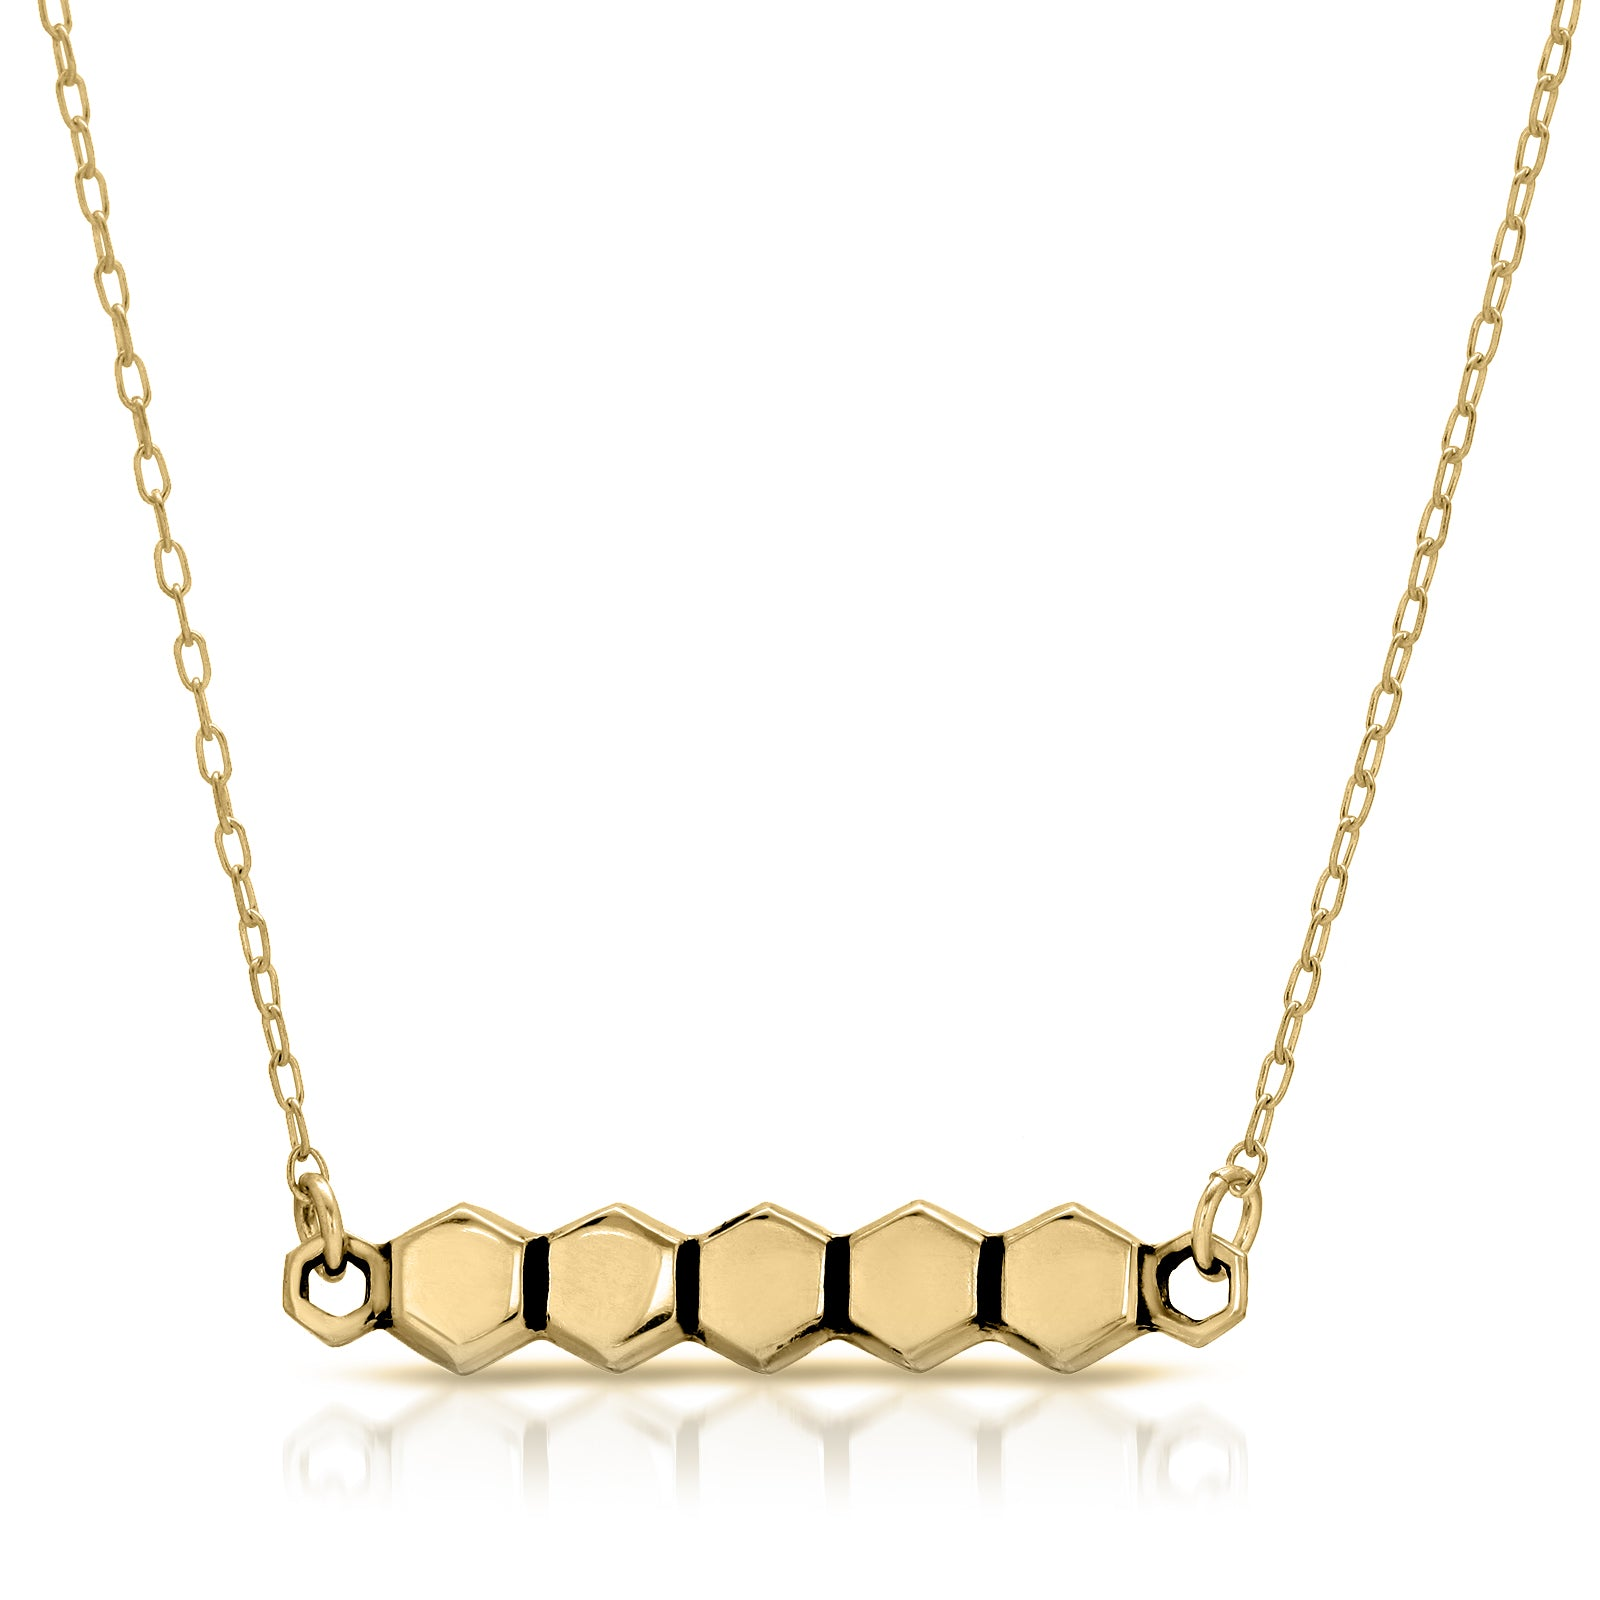 Honeycomb Necklace - The W Brothers